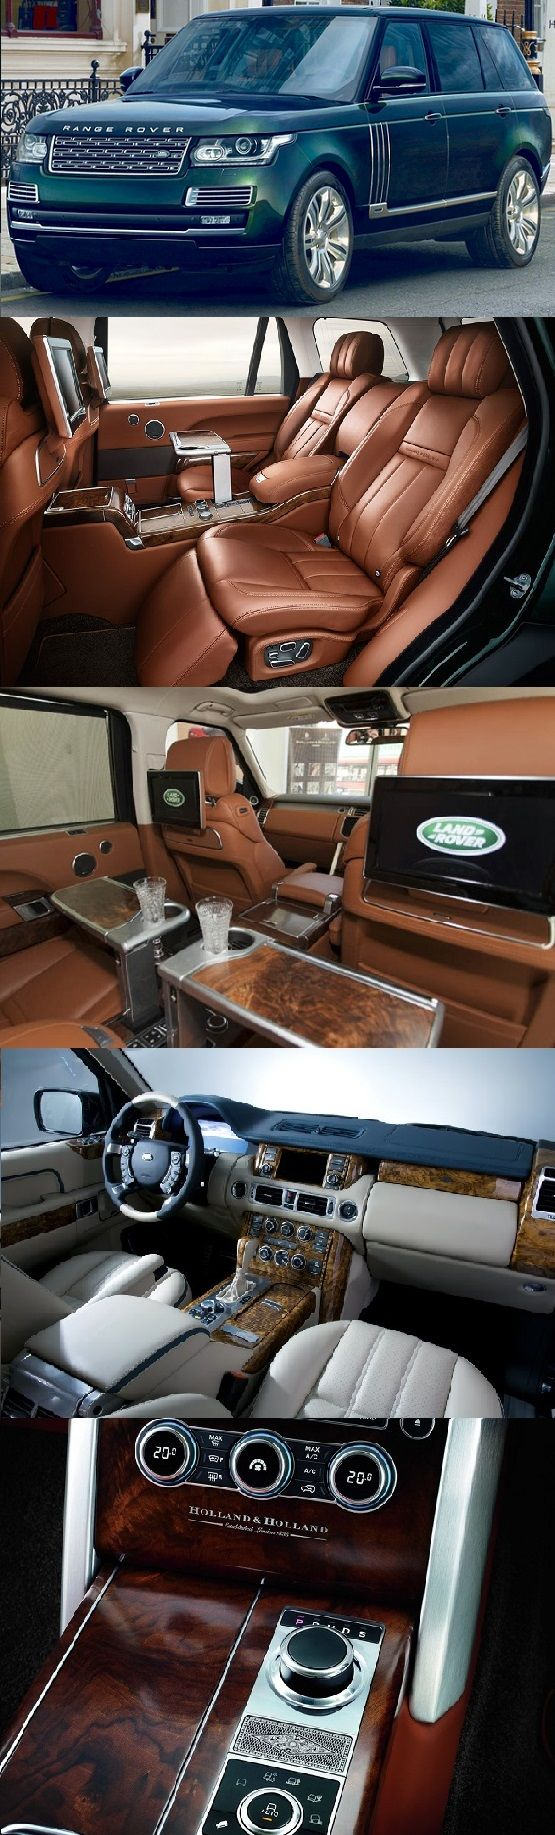 the most expensive suv today holland and holland range rover luxury suv will cost you just. Black Bedroom Furniture Sets. Home Design Ideas